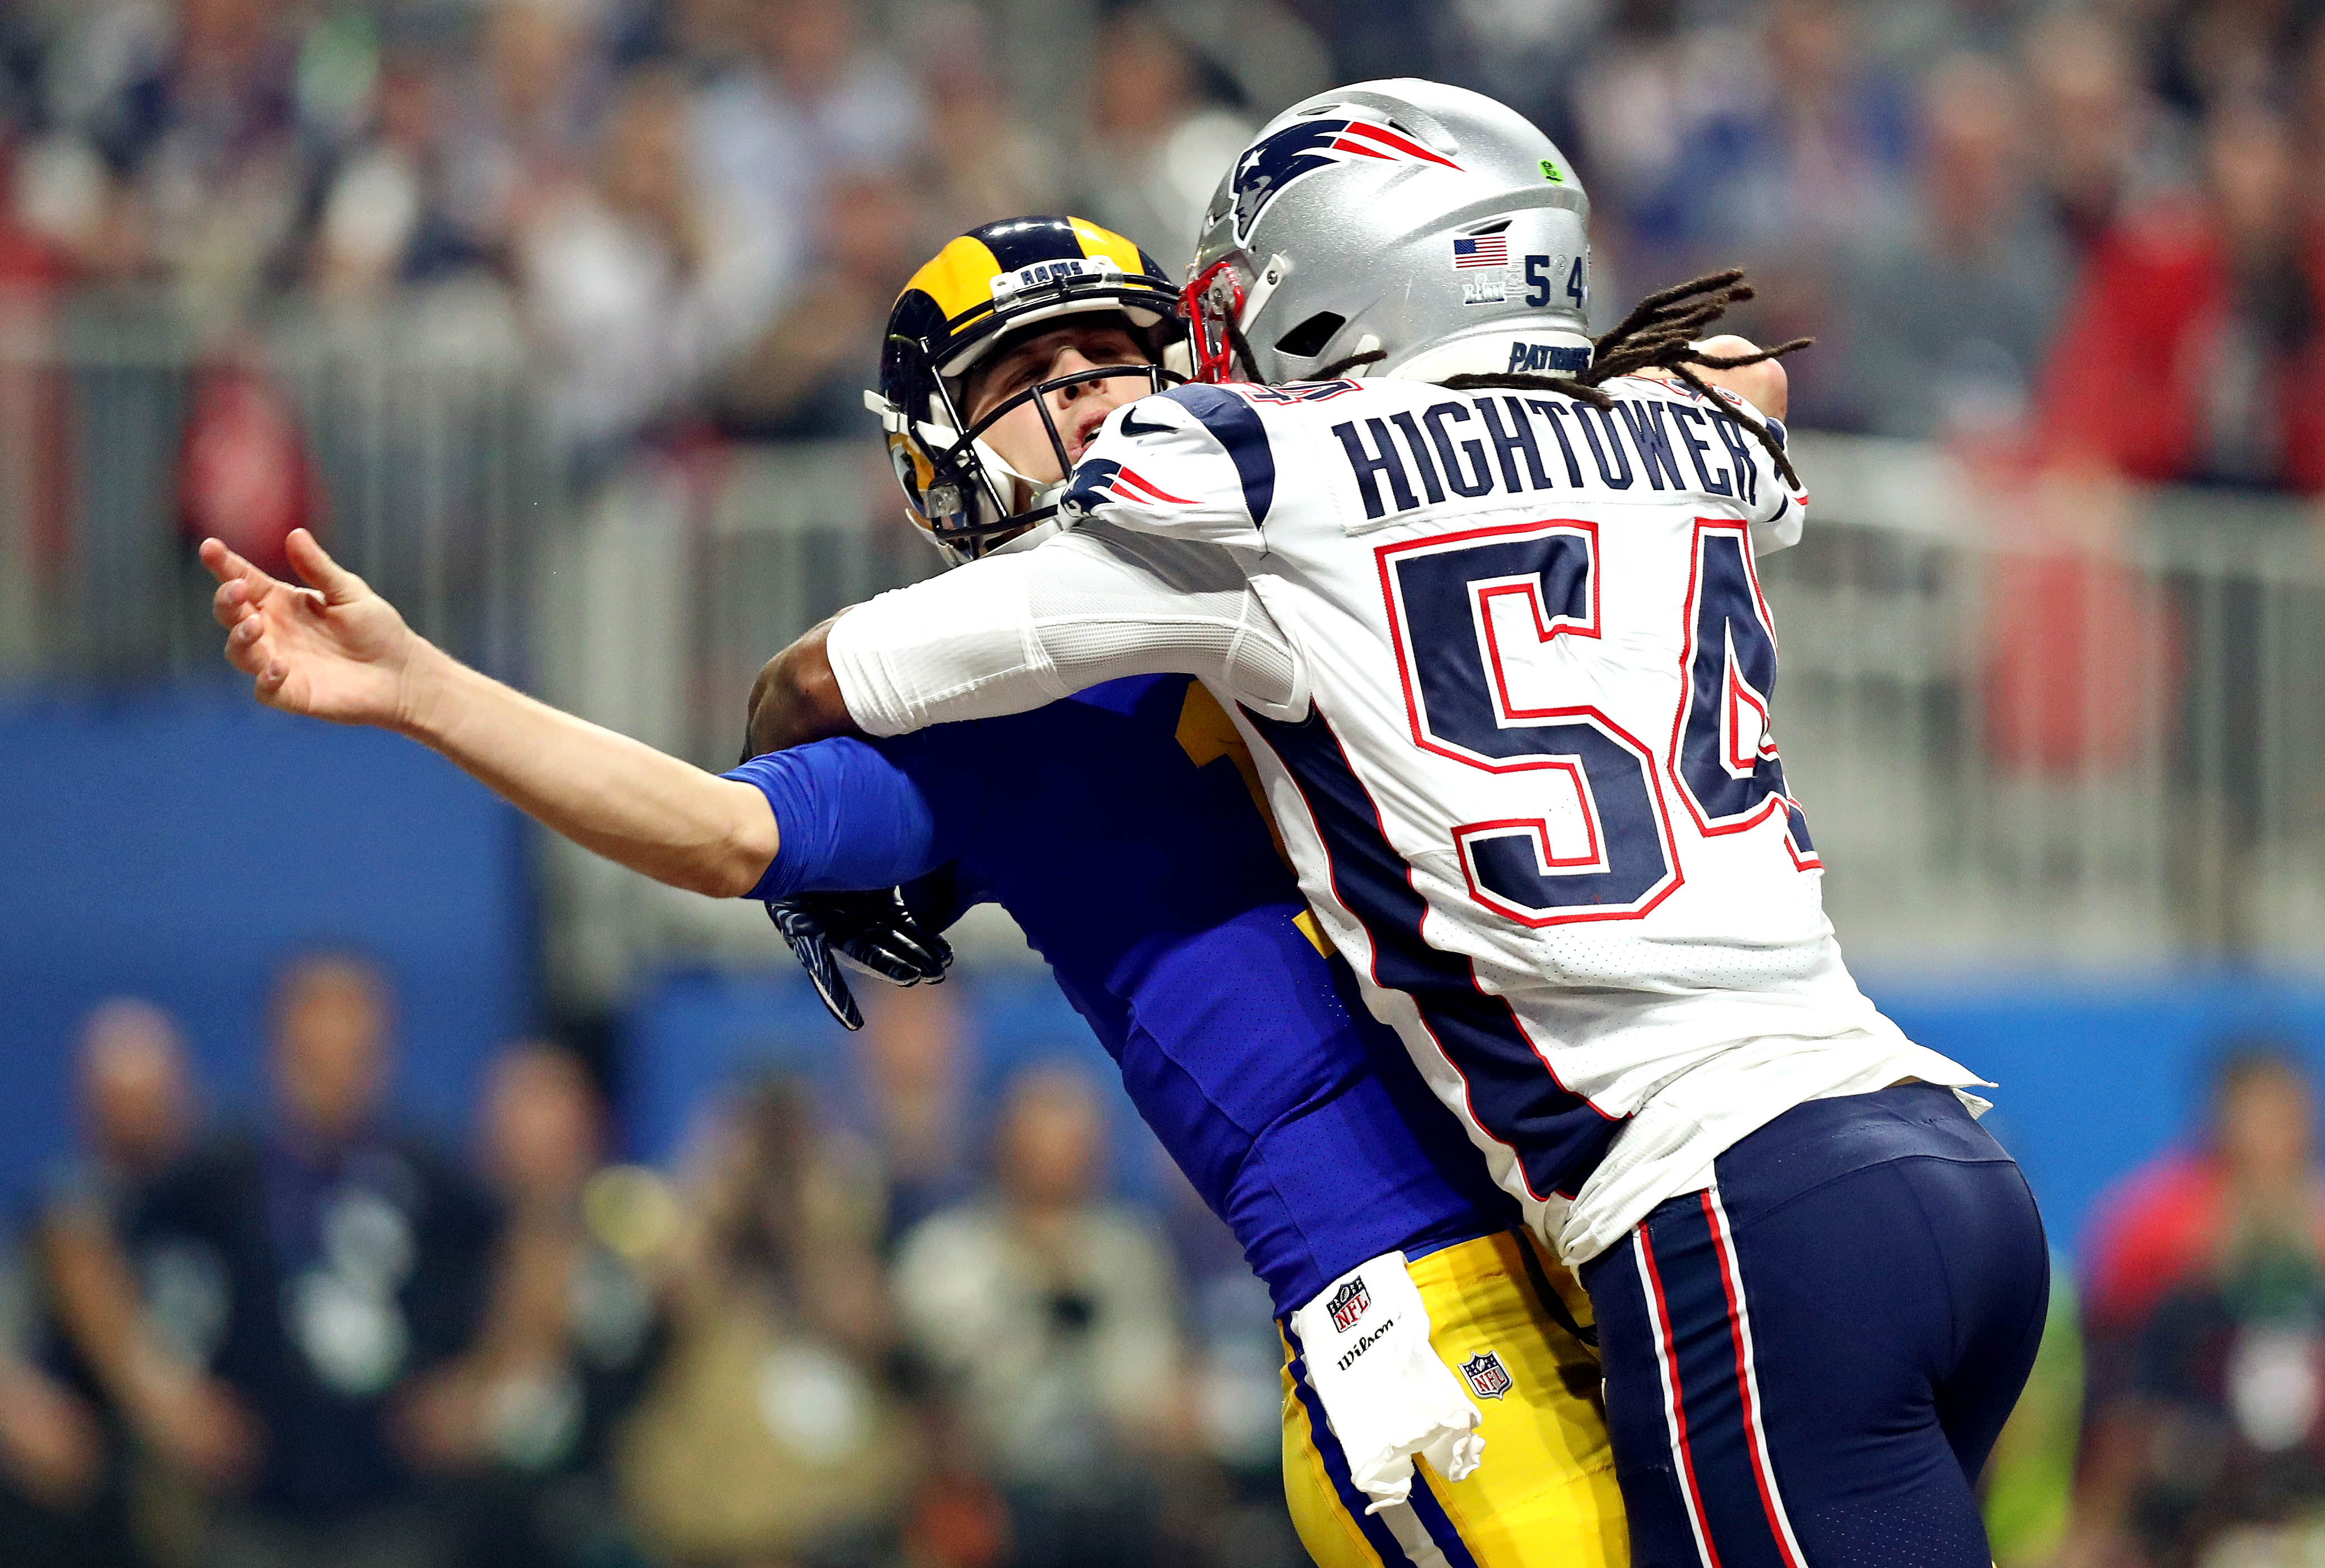 f43c6bcc997 Sunday 7  Dont a Hightower reflects on missing only one game this season